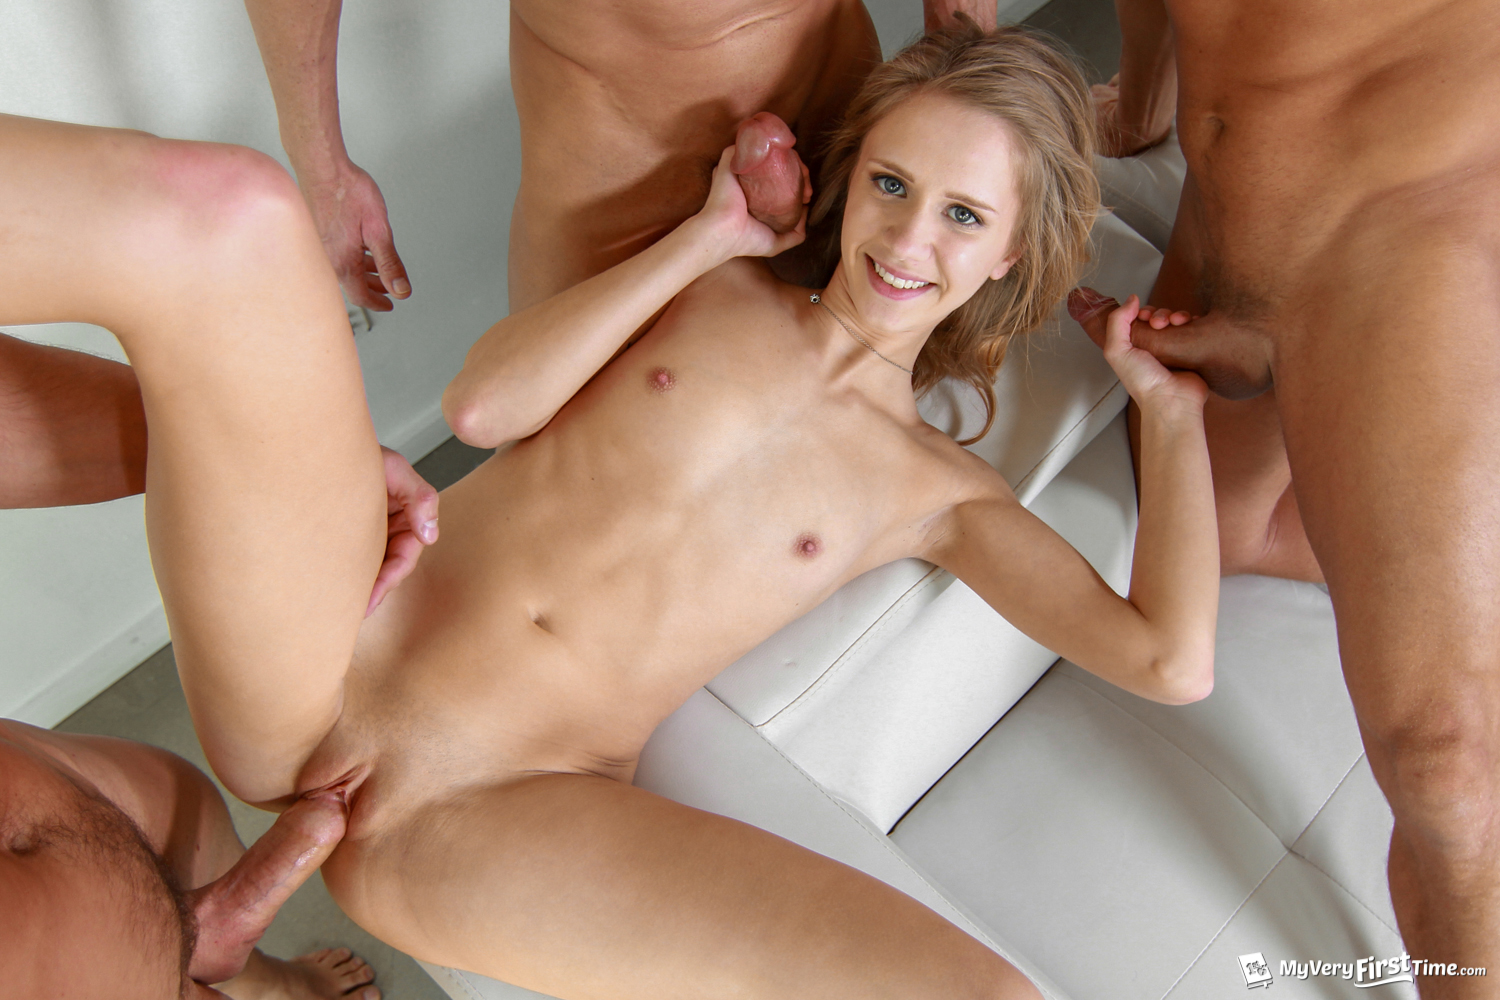 Very hot blonde gets great anal and facials by 2 lucky dudes 10